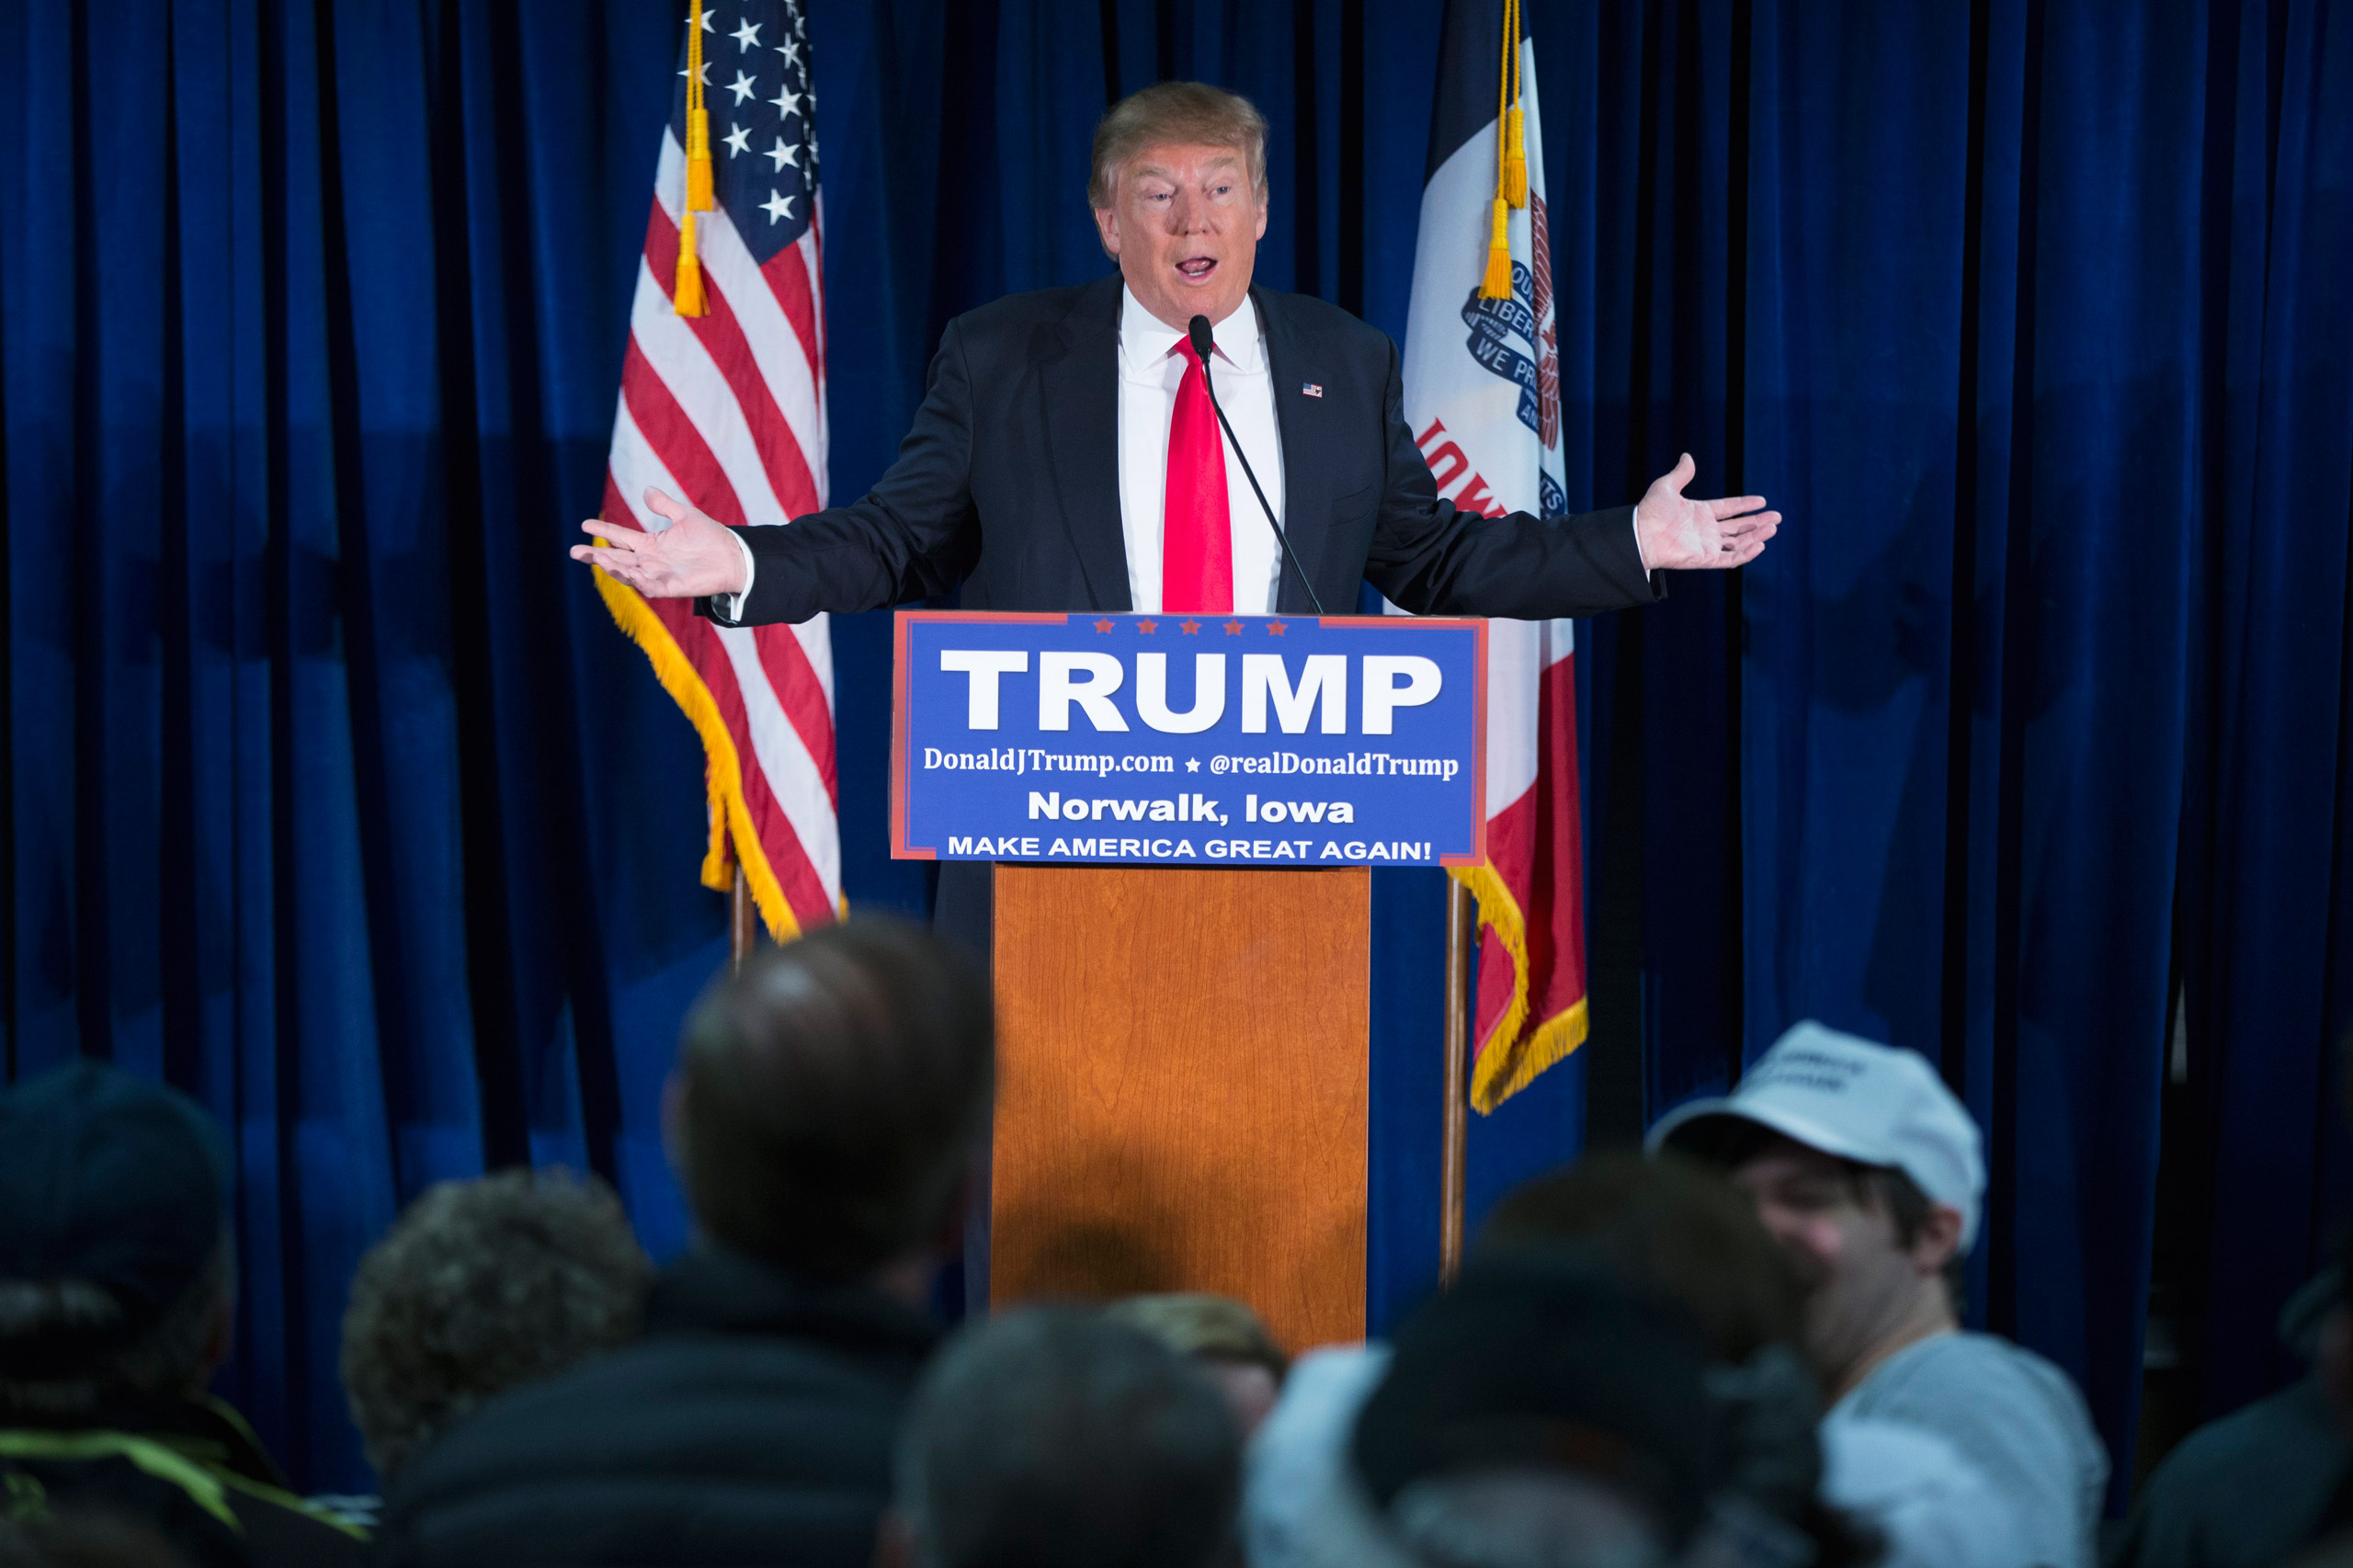 Republican presidential candidate Donald Trump speaks during a campaign event in Norwalk, Iowa, on Jan. 20, 2016.